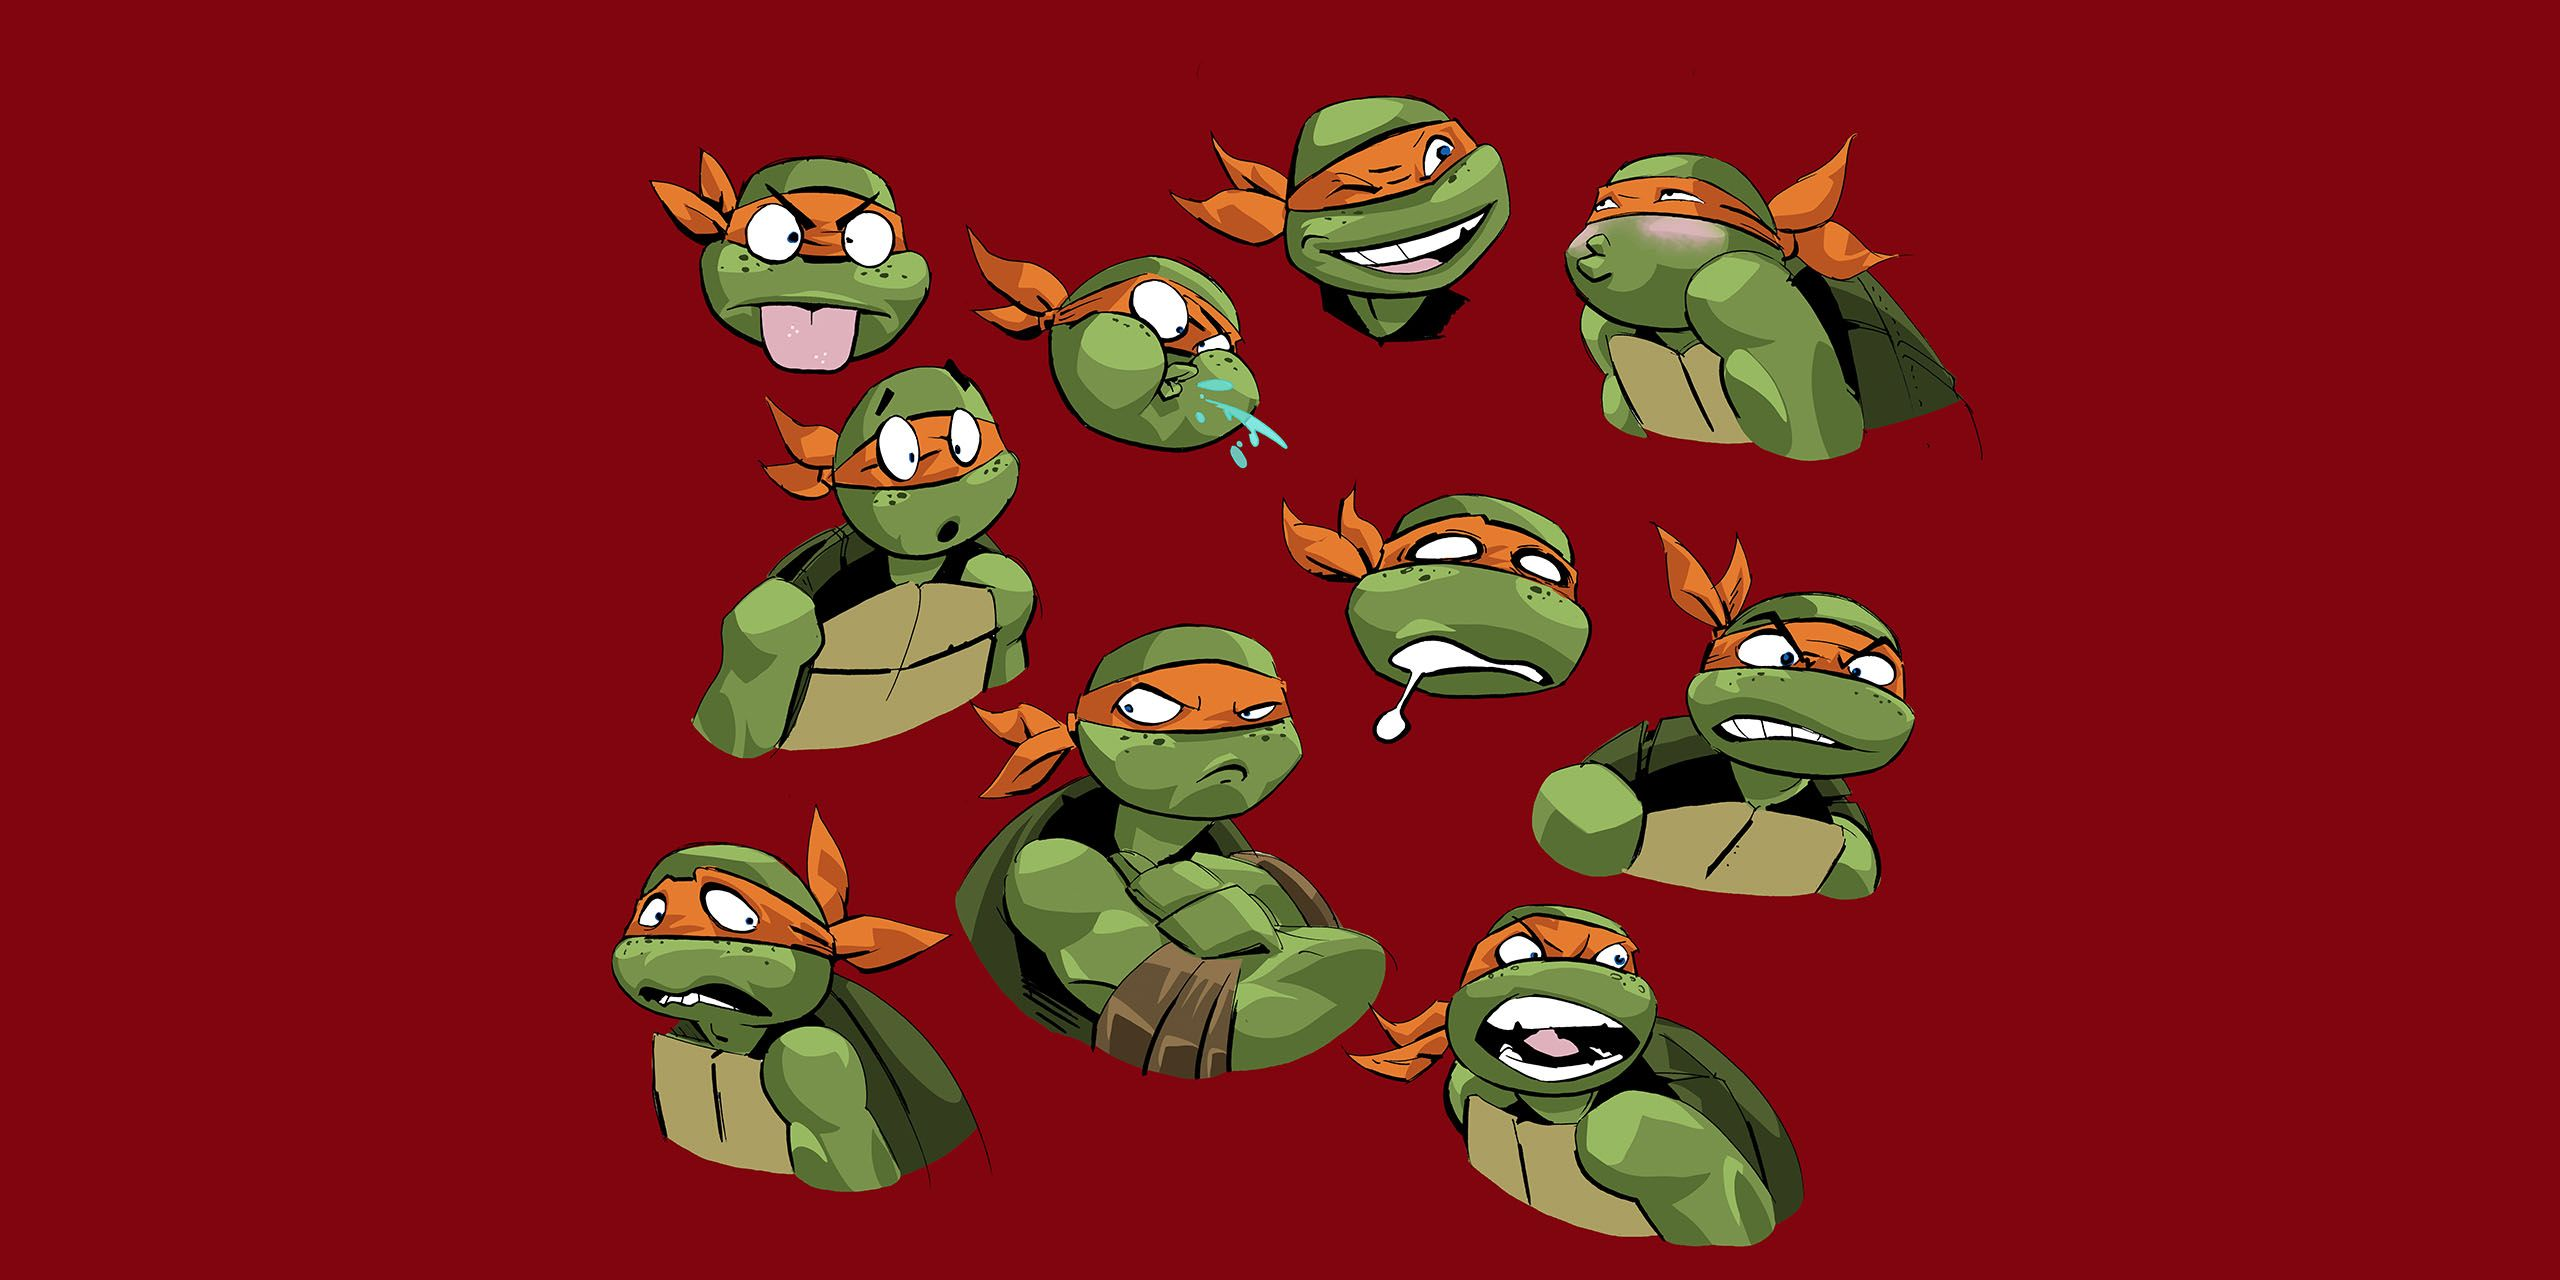 Teenage Mutant Ninja Turtles - Nickelodeon Animation Studio